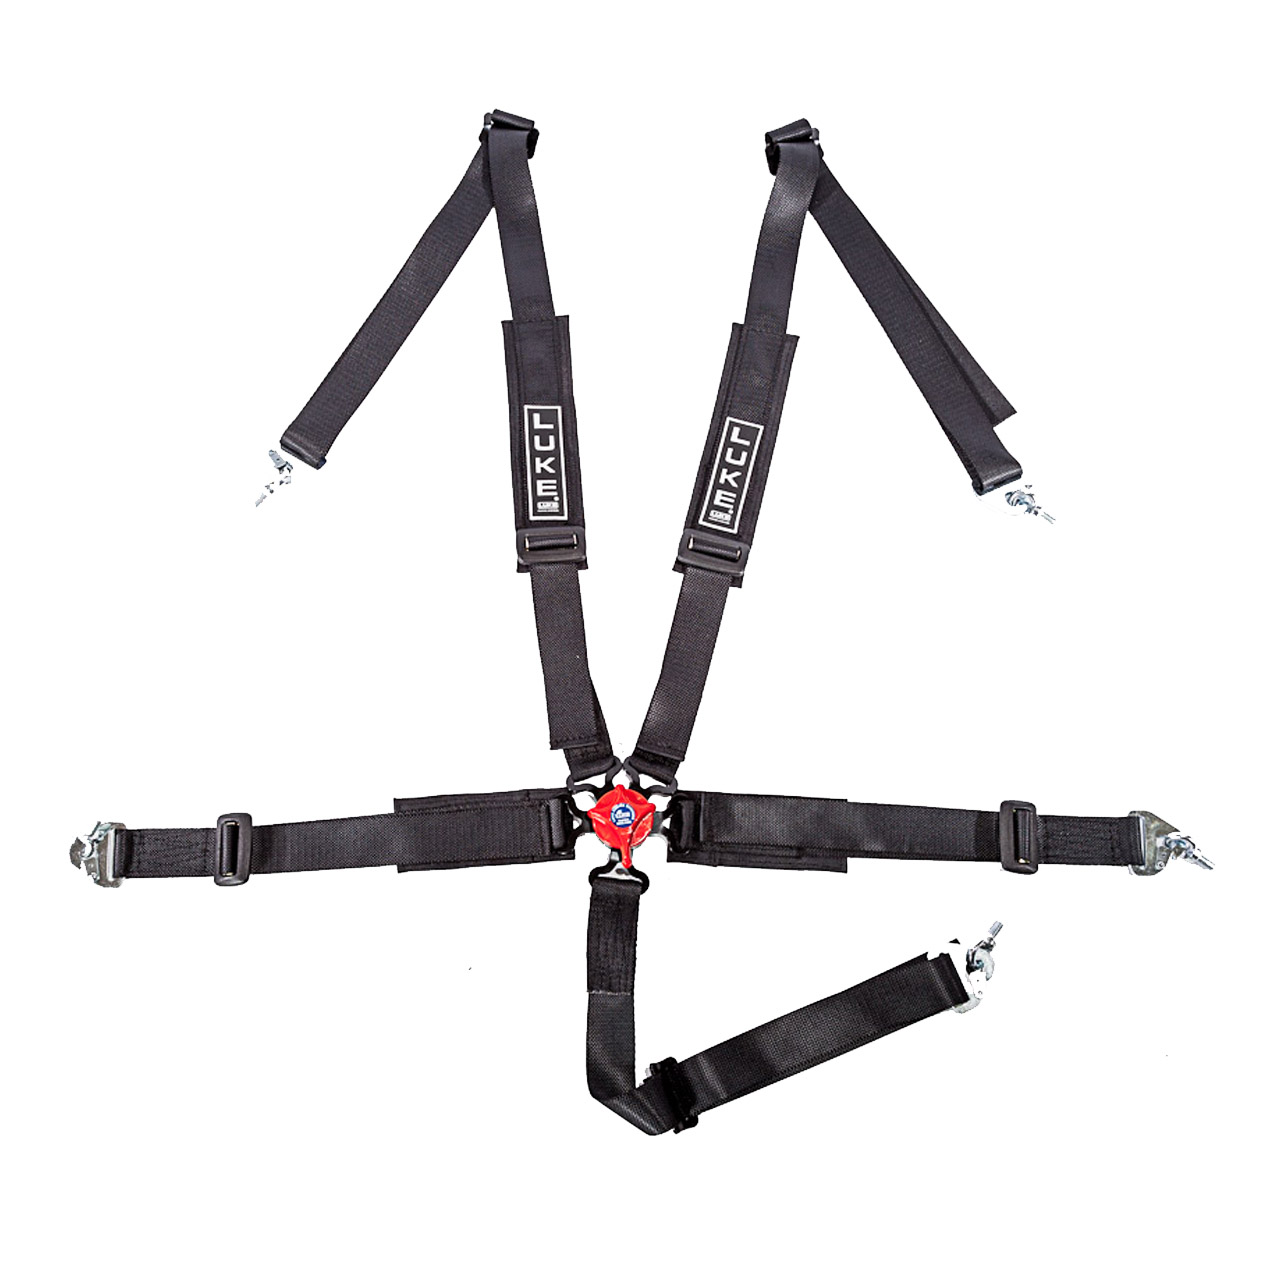 LUKE 5 Point Racing Harness in Black/Red - Professional Harness Range